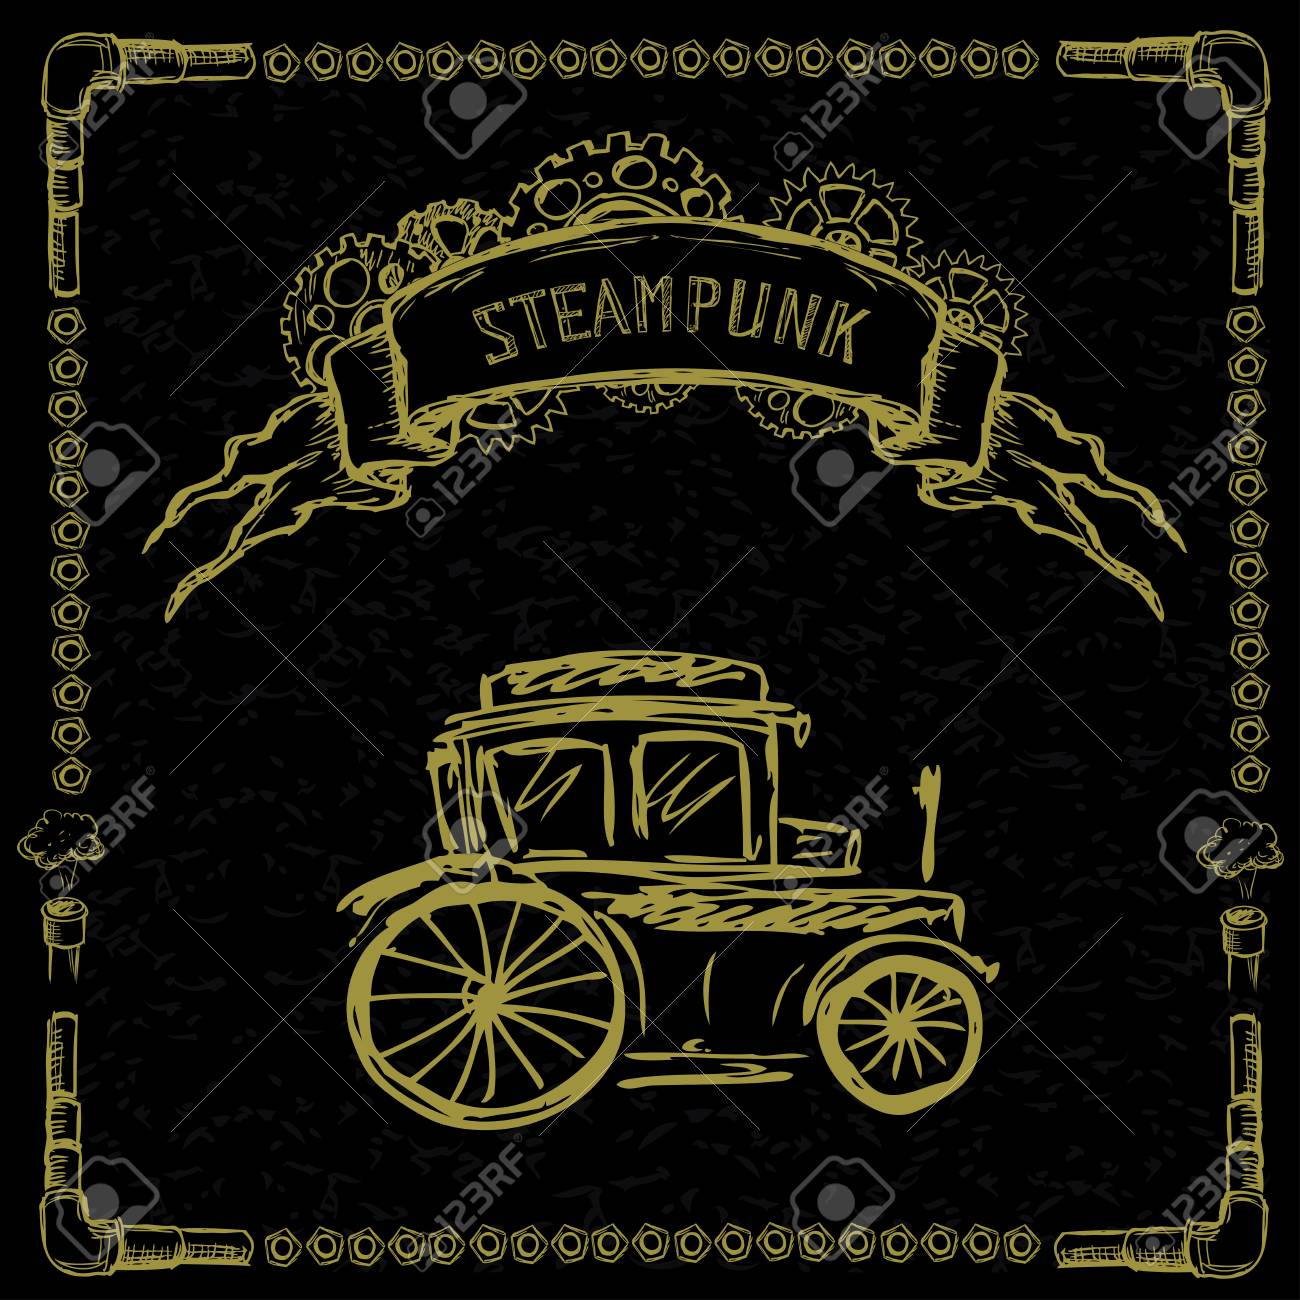 TERMINÉ | Événement premier: La mort pour un roi - Page 3 47419304-steampunk-retro-cars-on-black-hand-drawn-vector-illustration-